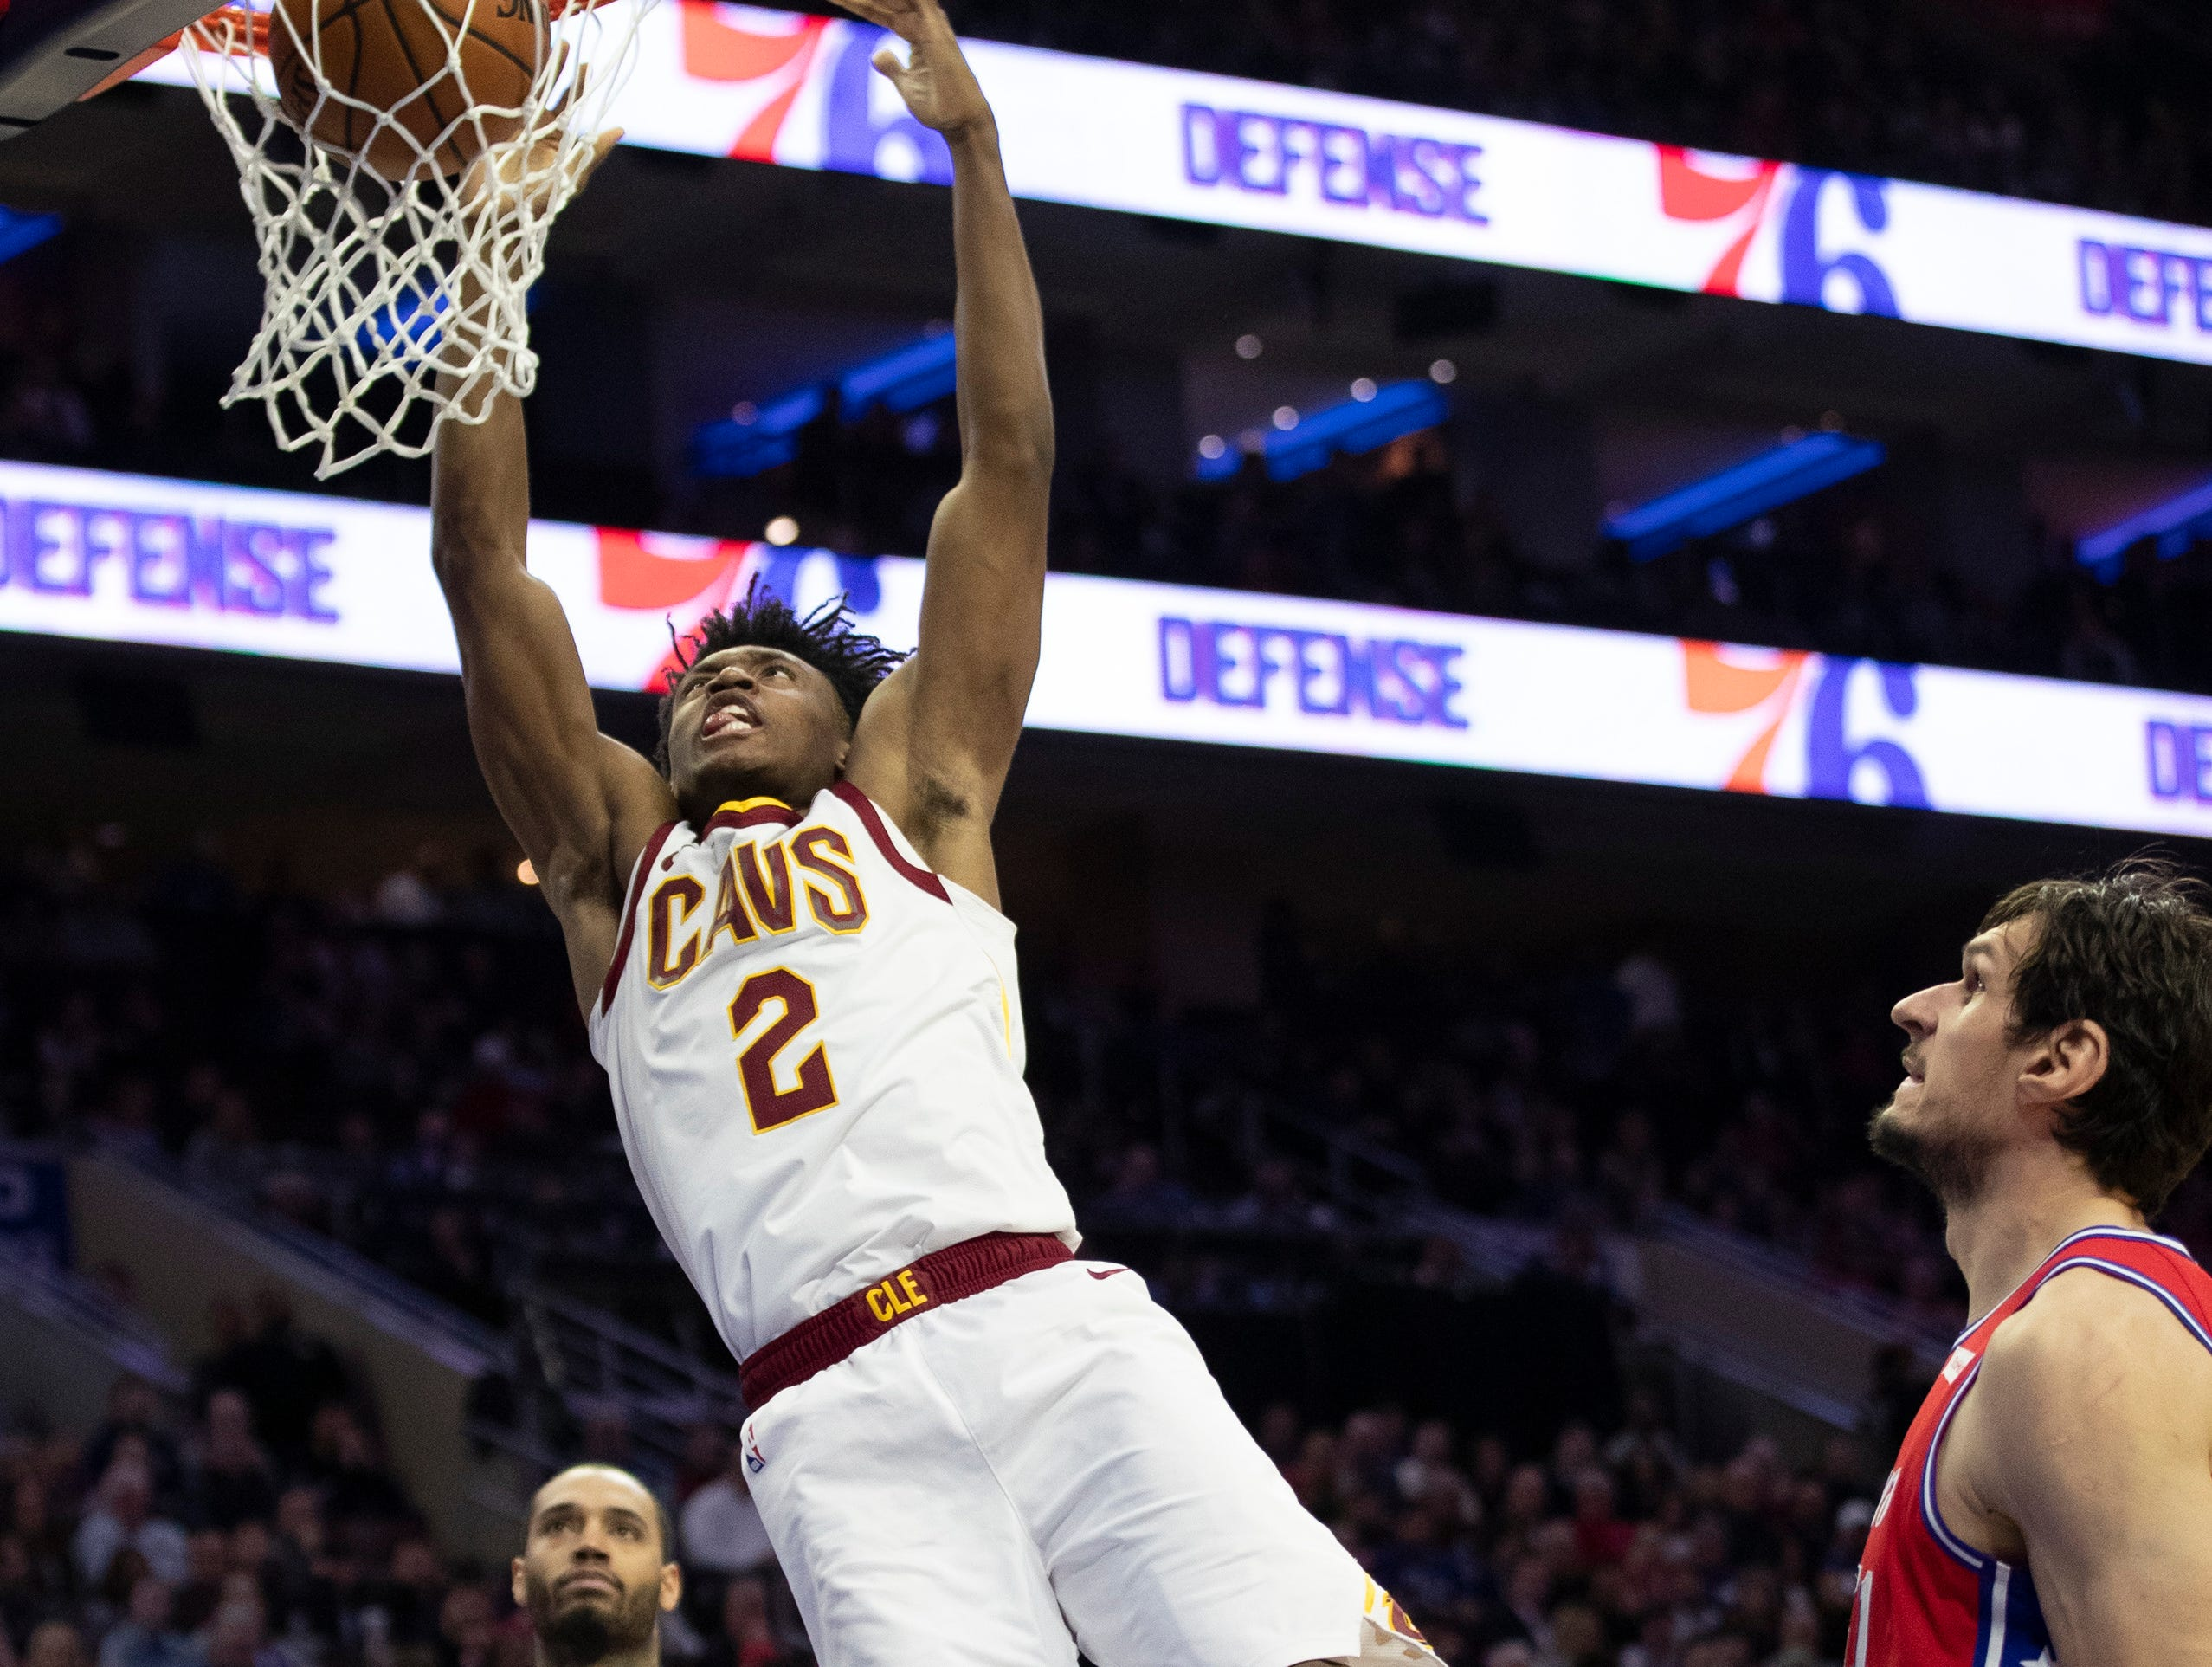 Cleveland Cavaliers' Collin Sexton, center, scores as Philadelphia 76ers' Mike Scott, left, and Boban Marjanovic, right, of Serbia, look on during the second half of an NBA basketball game, Tuesday, March 12, 2019, in Philadelphia. The 76ers won 106-99. (AP Photo/Chris Szagola)